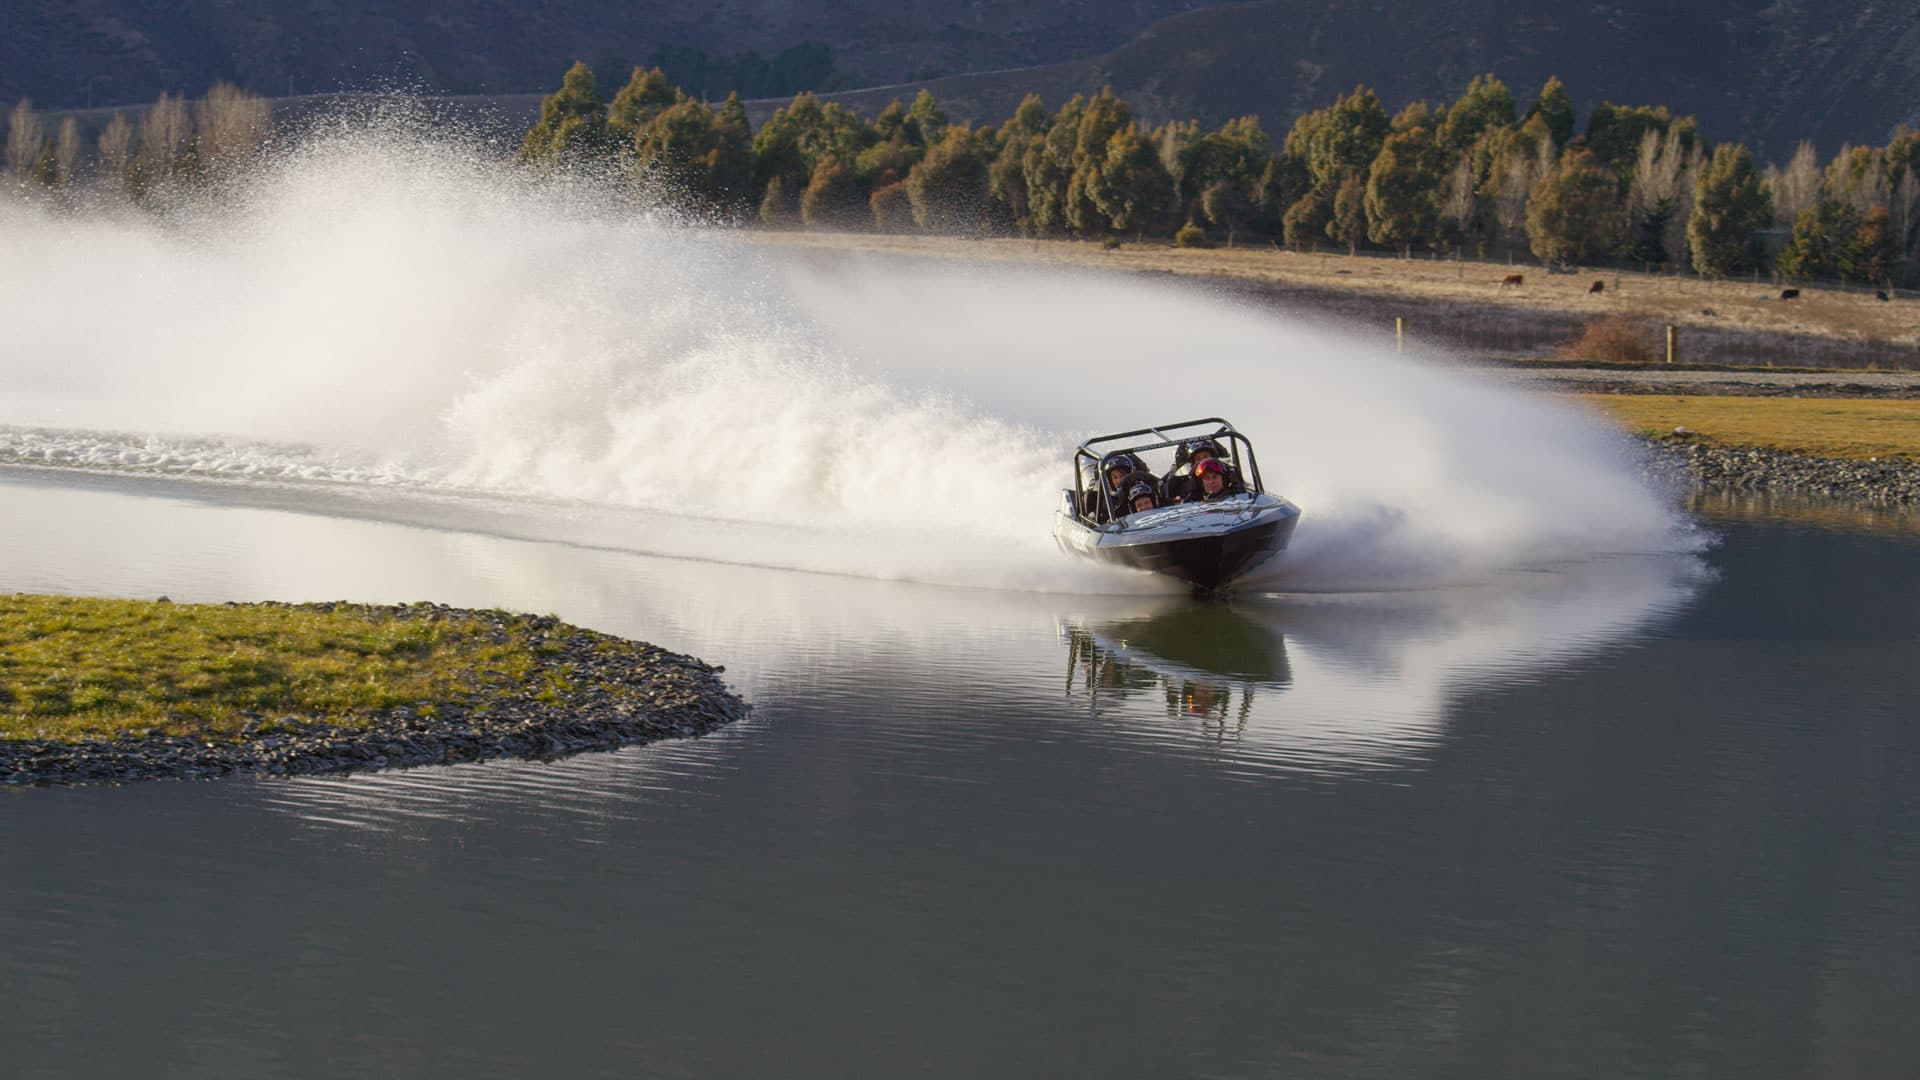 Oxbow Jet Sprint Boat Group Ride on the racetrack